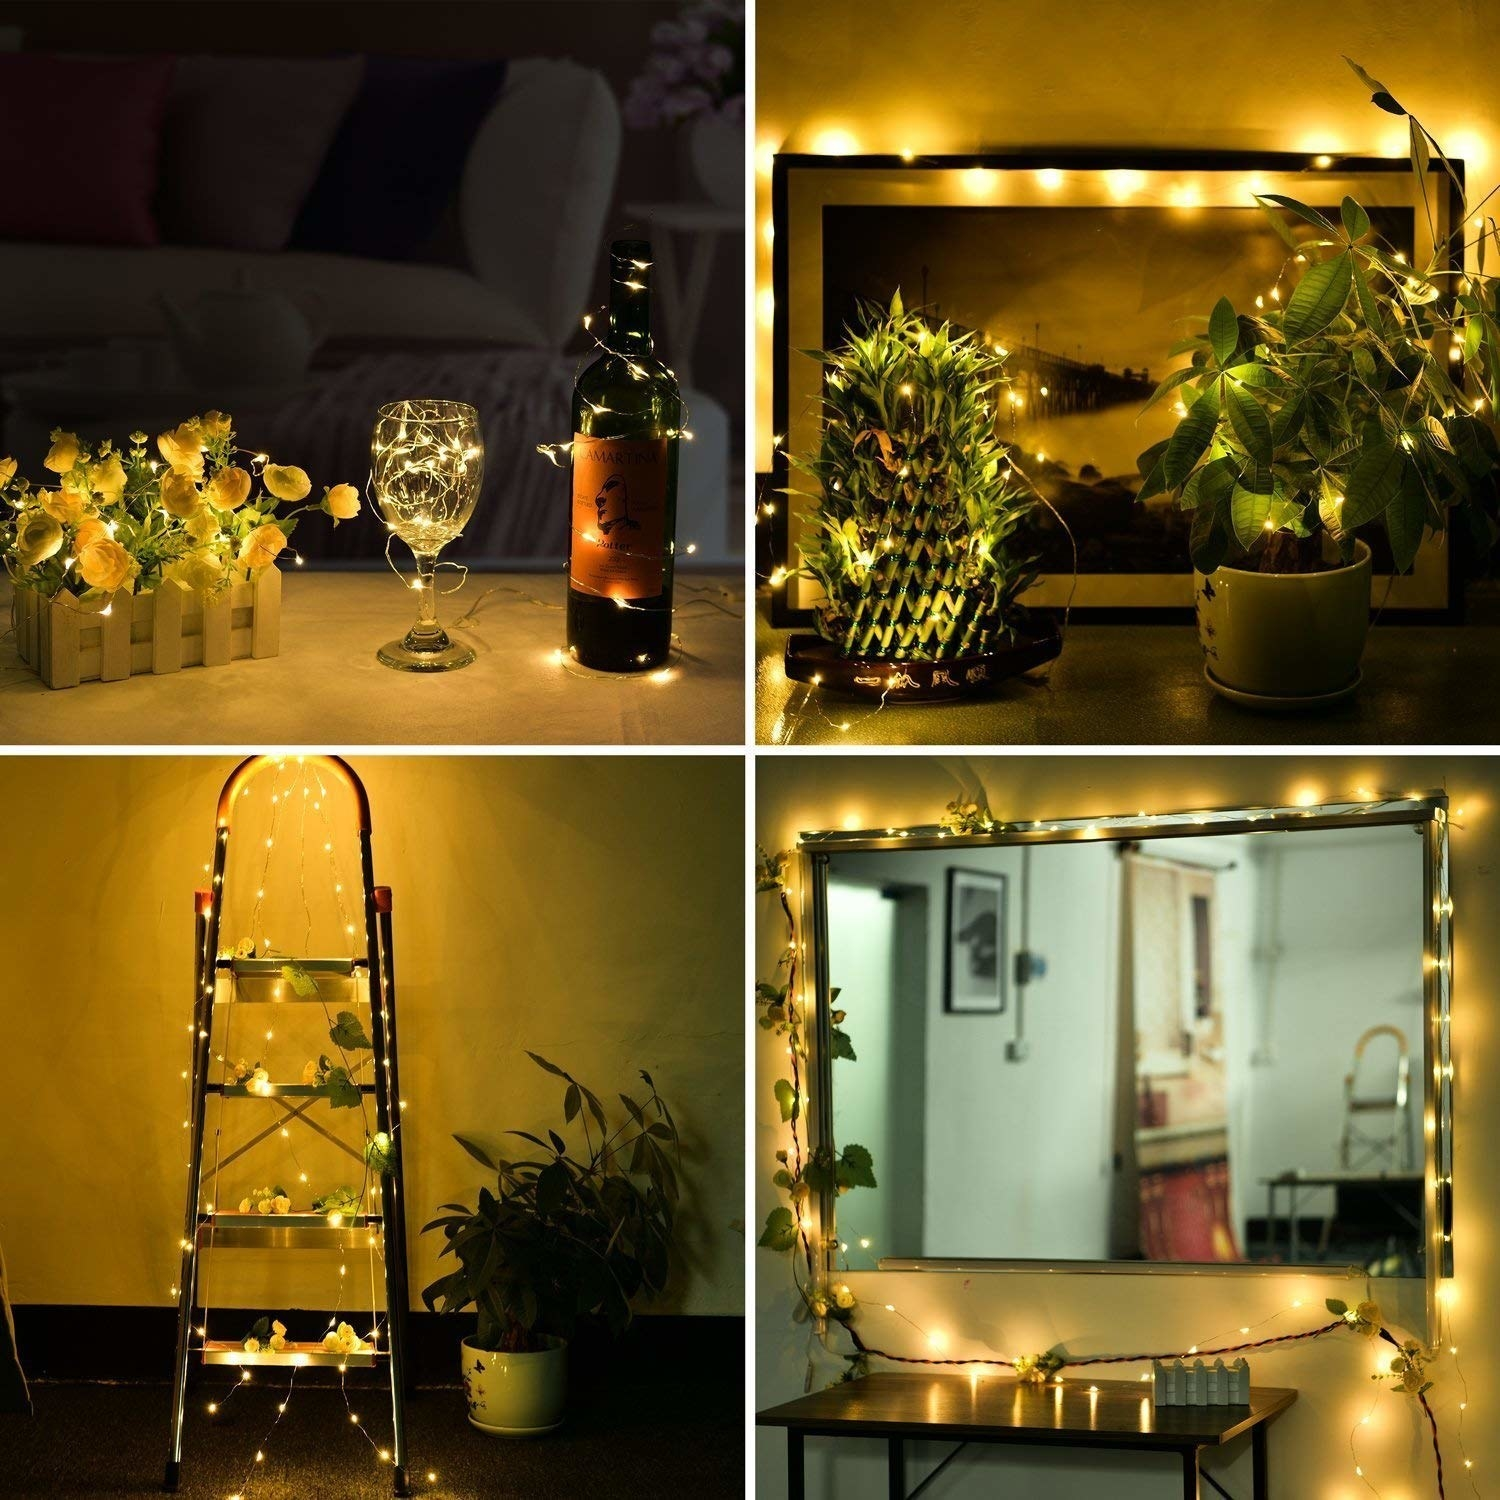 Fairy lights draped over various surfaces - a wine bottle and glass, plants, a ladder, and a mirror.